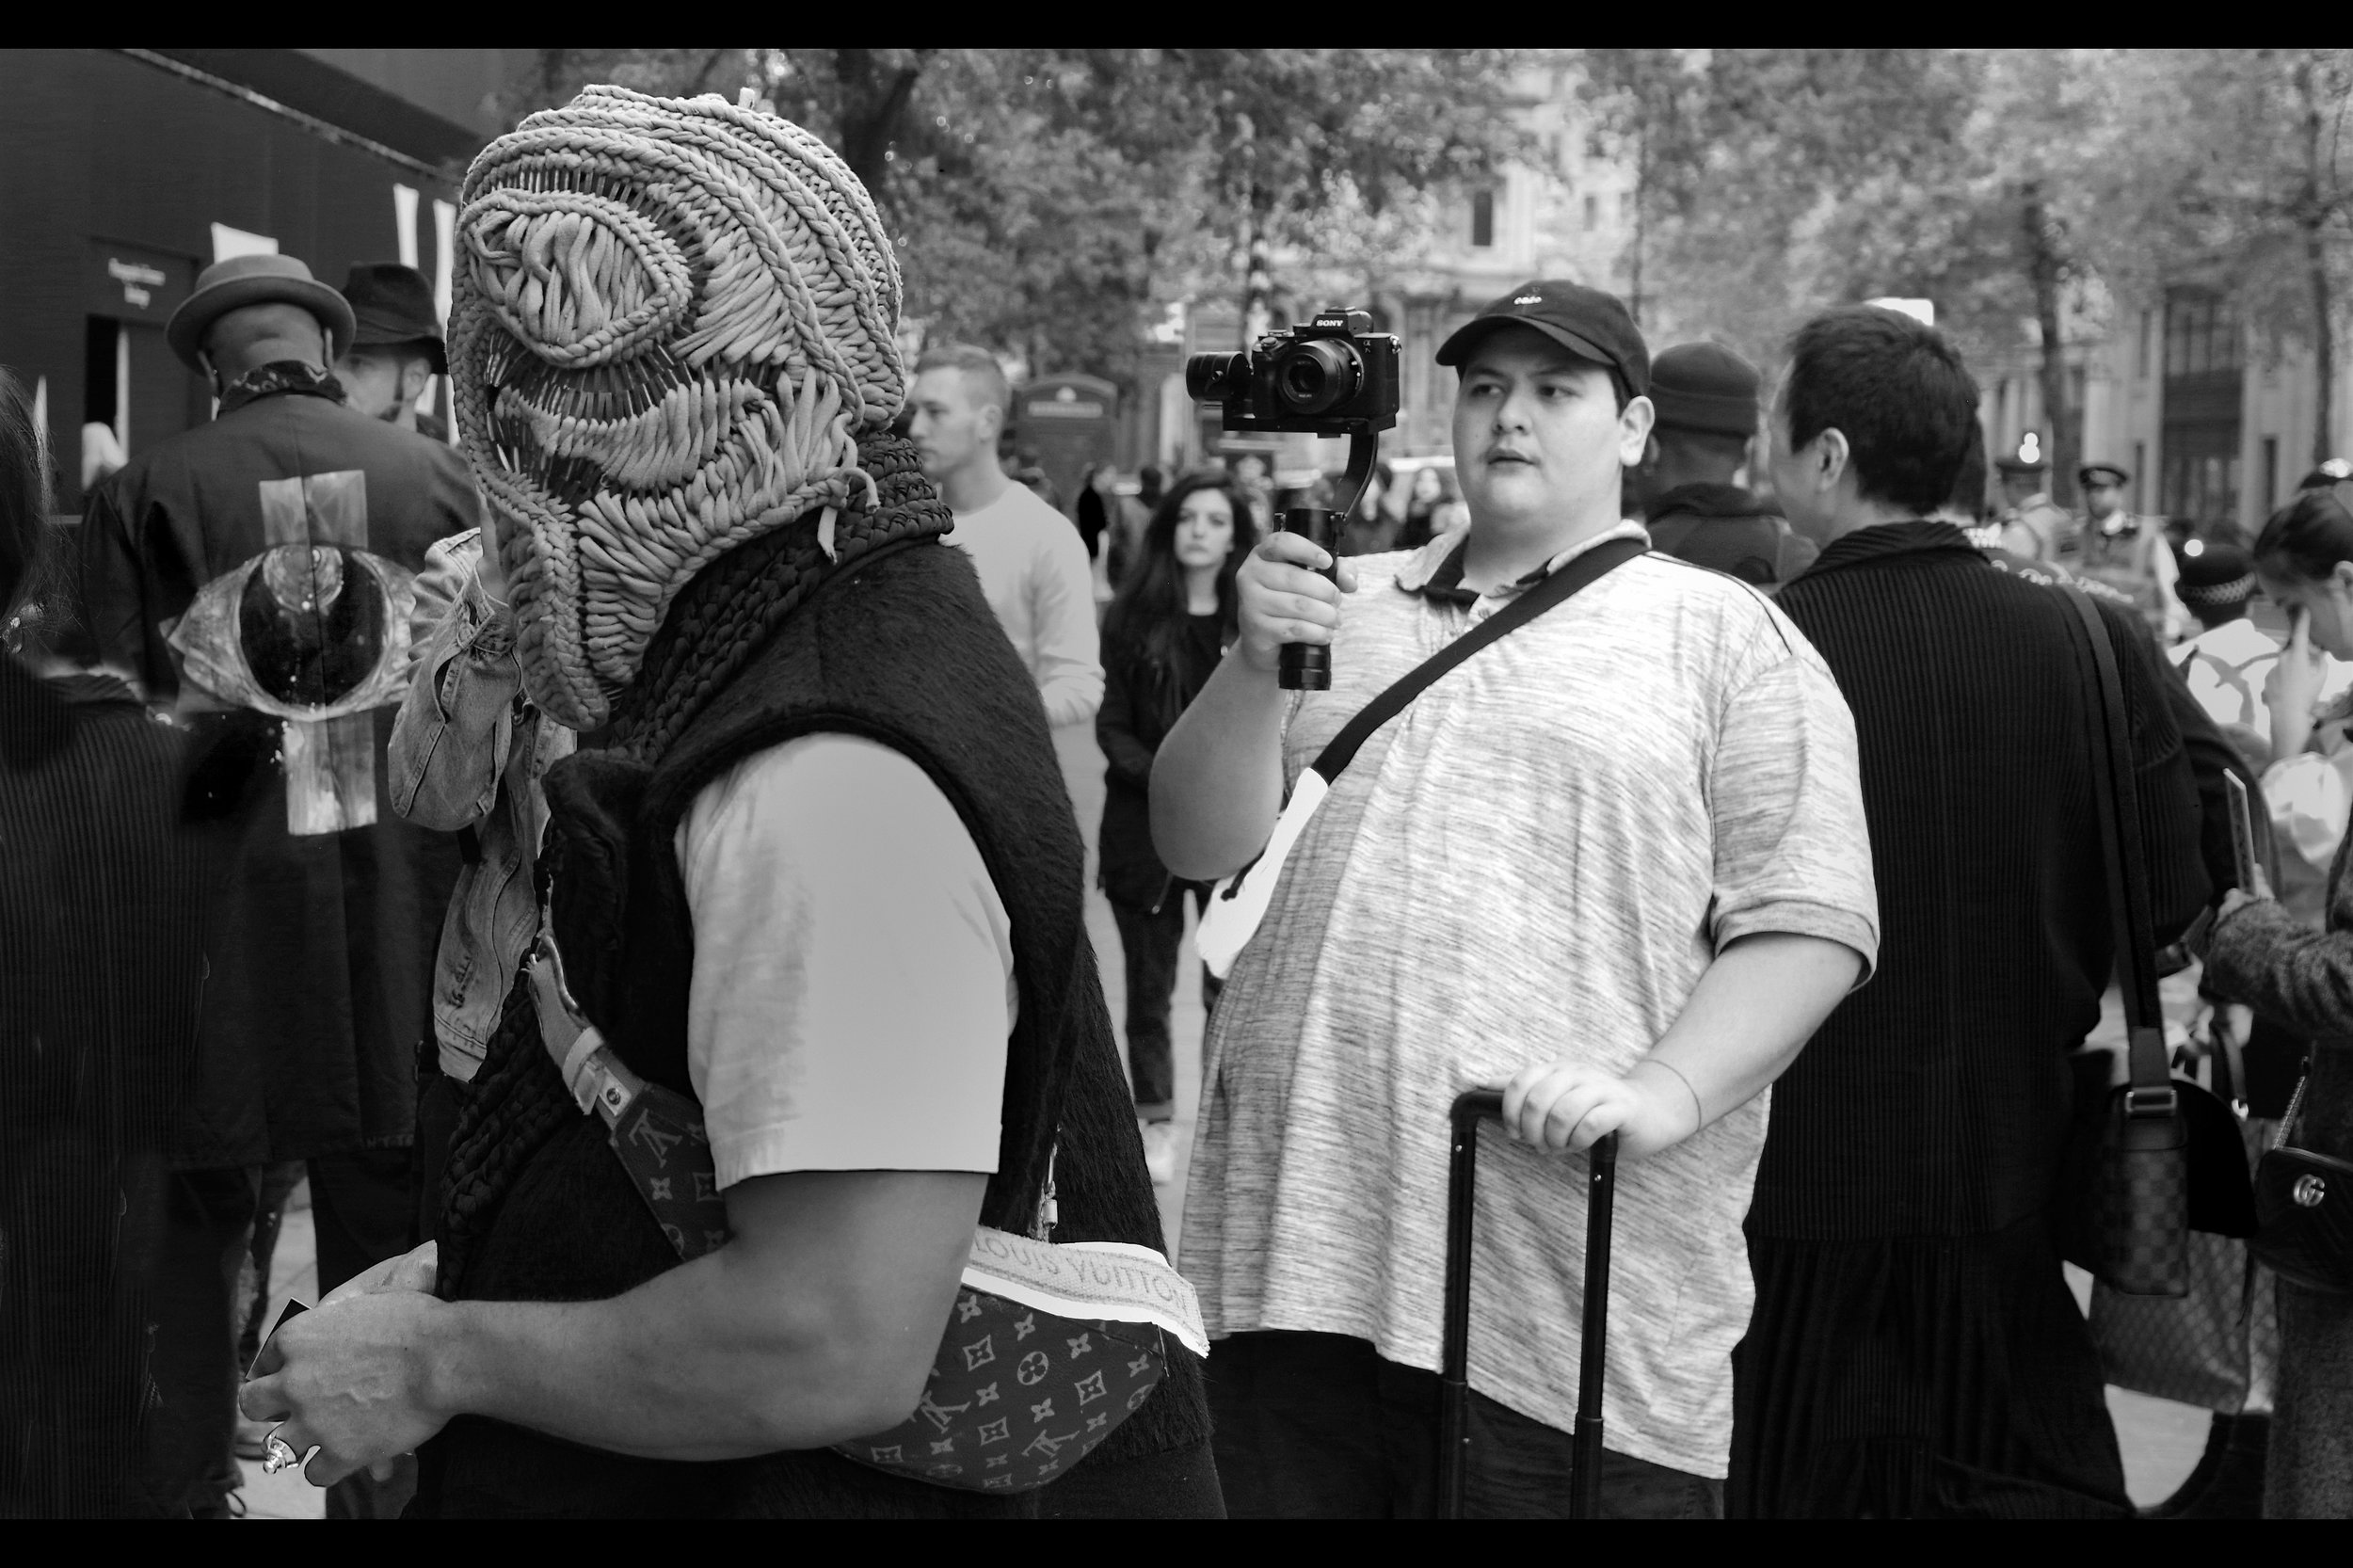 """""""Nah, bro. I totally dig your 'art'. Doesn't intimidate me one bit""""  By the way, for those of you running your own sweatshop operations at home, that head-covering the guy is wearing goes ALL the way around the head. I did not see any evidence of eye-holes."""